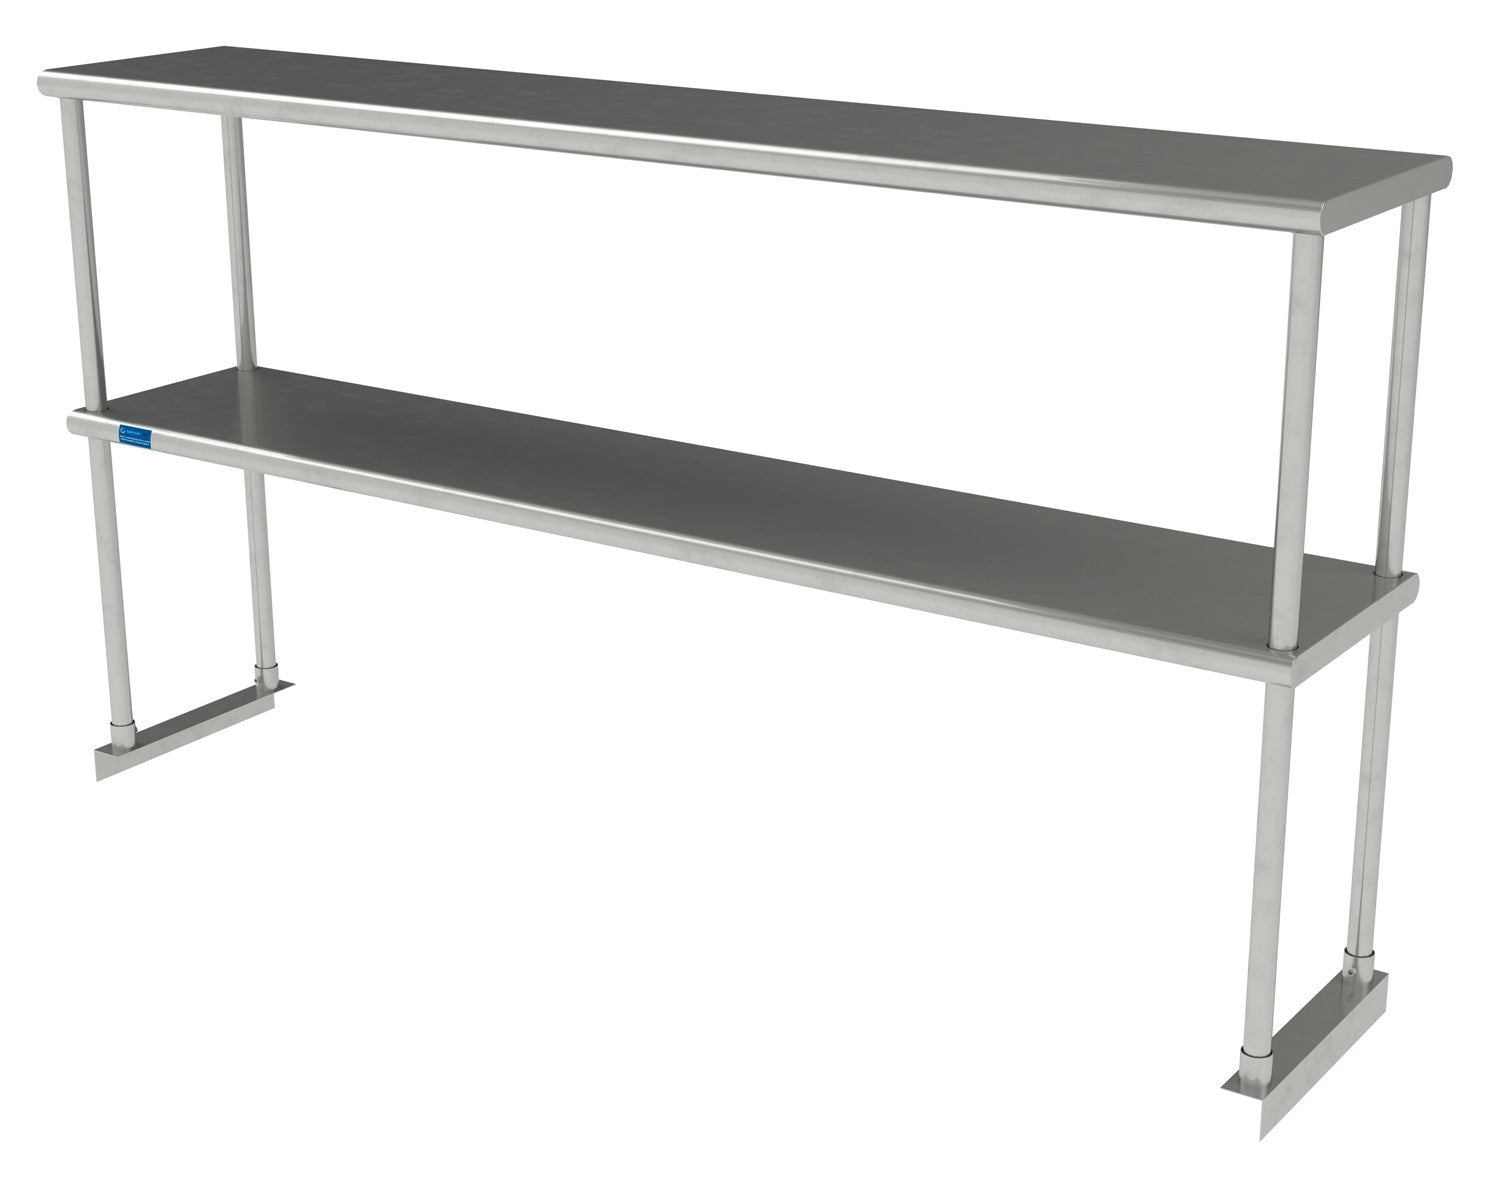 "12"" X 60"" Stainless Steel Double-Tier Shelf - AmGoodSupply.com"